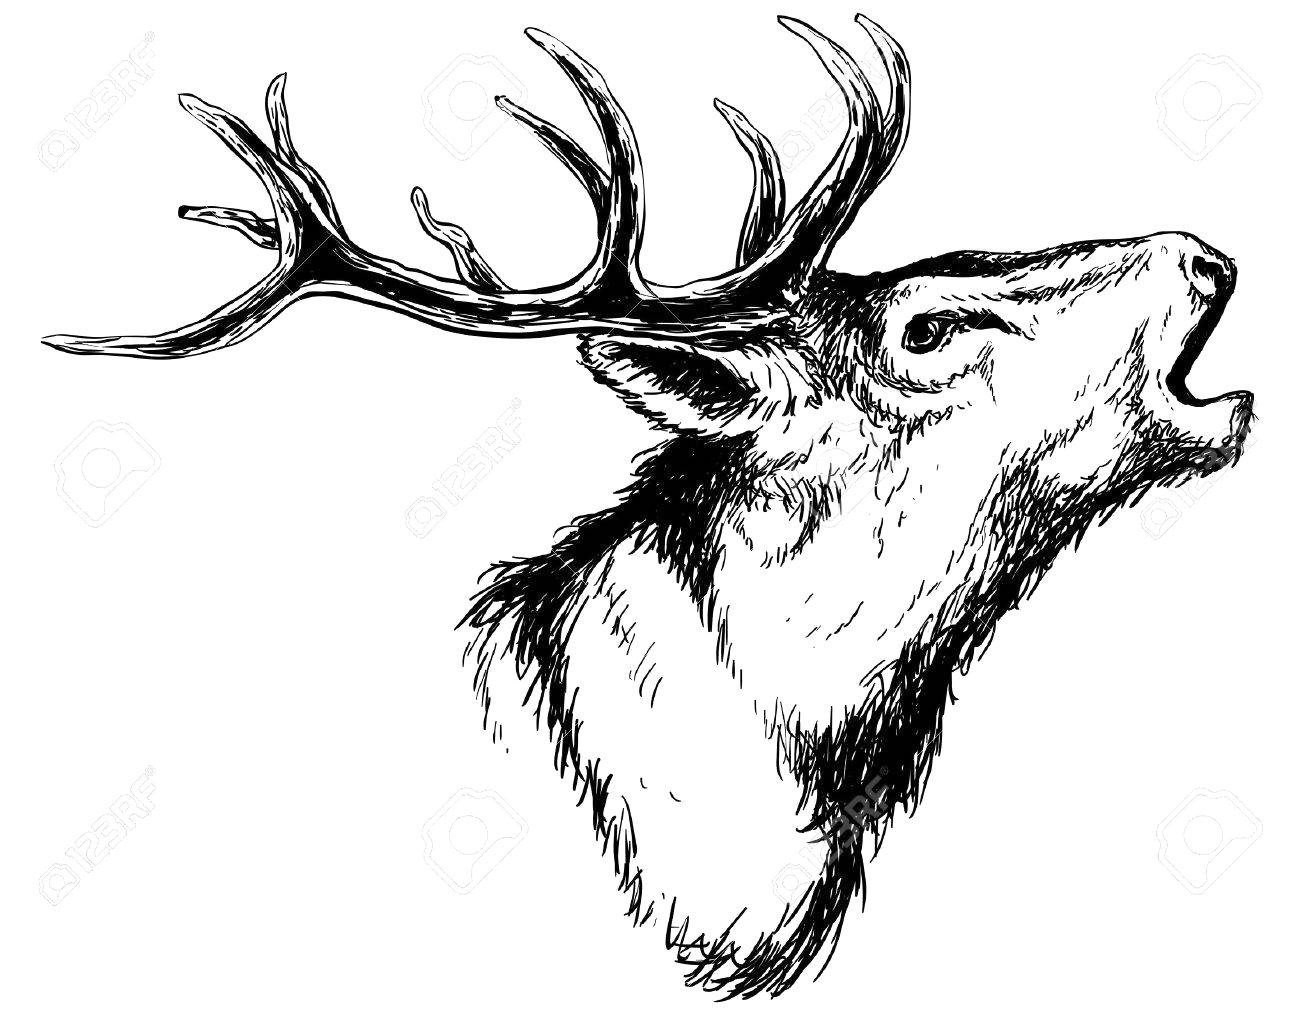 1300x1015 56558253 Hand Drawn Image Of Big White Tail Buck Head With Large